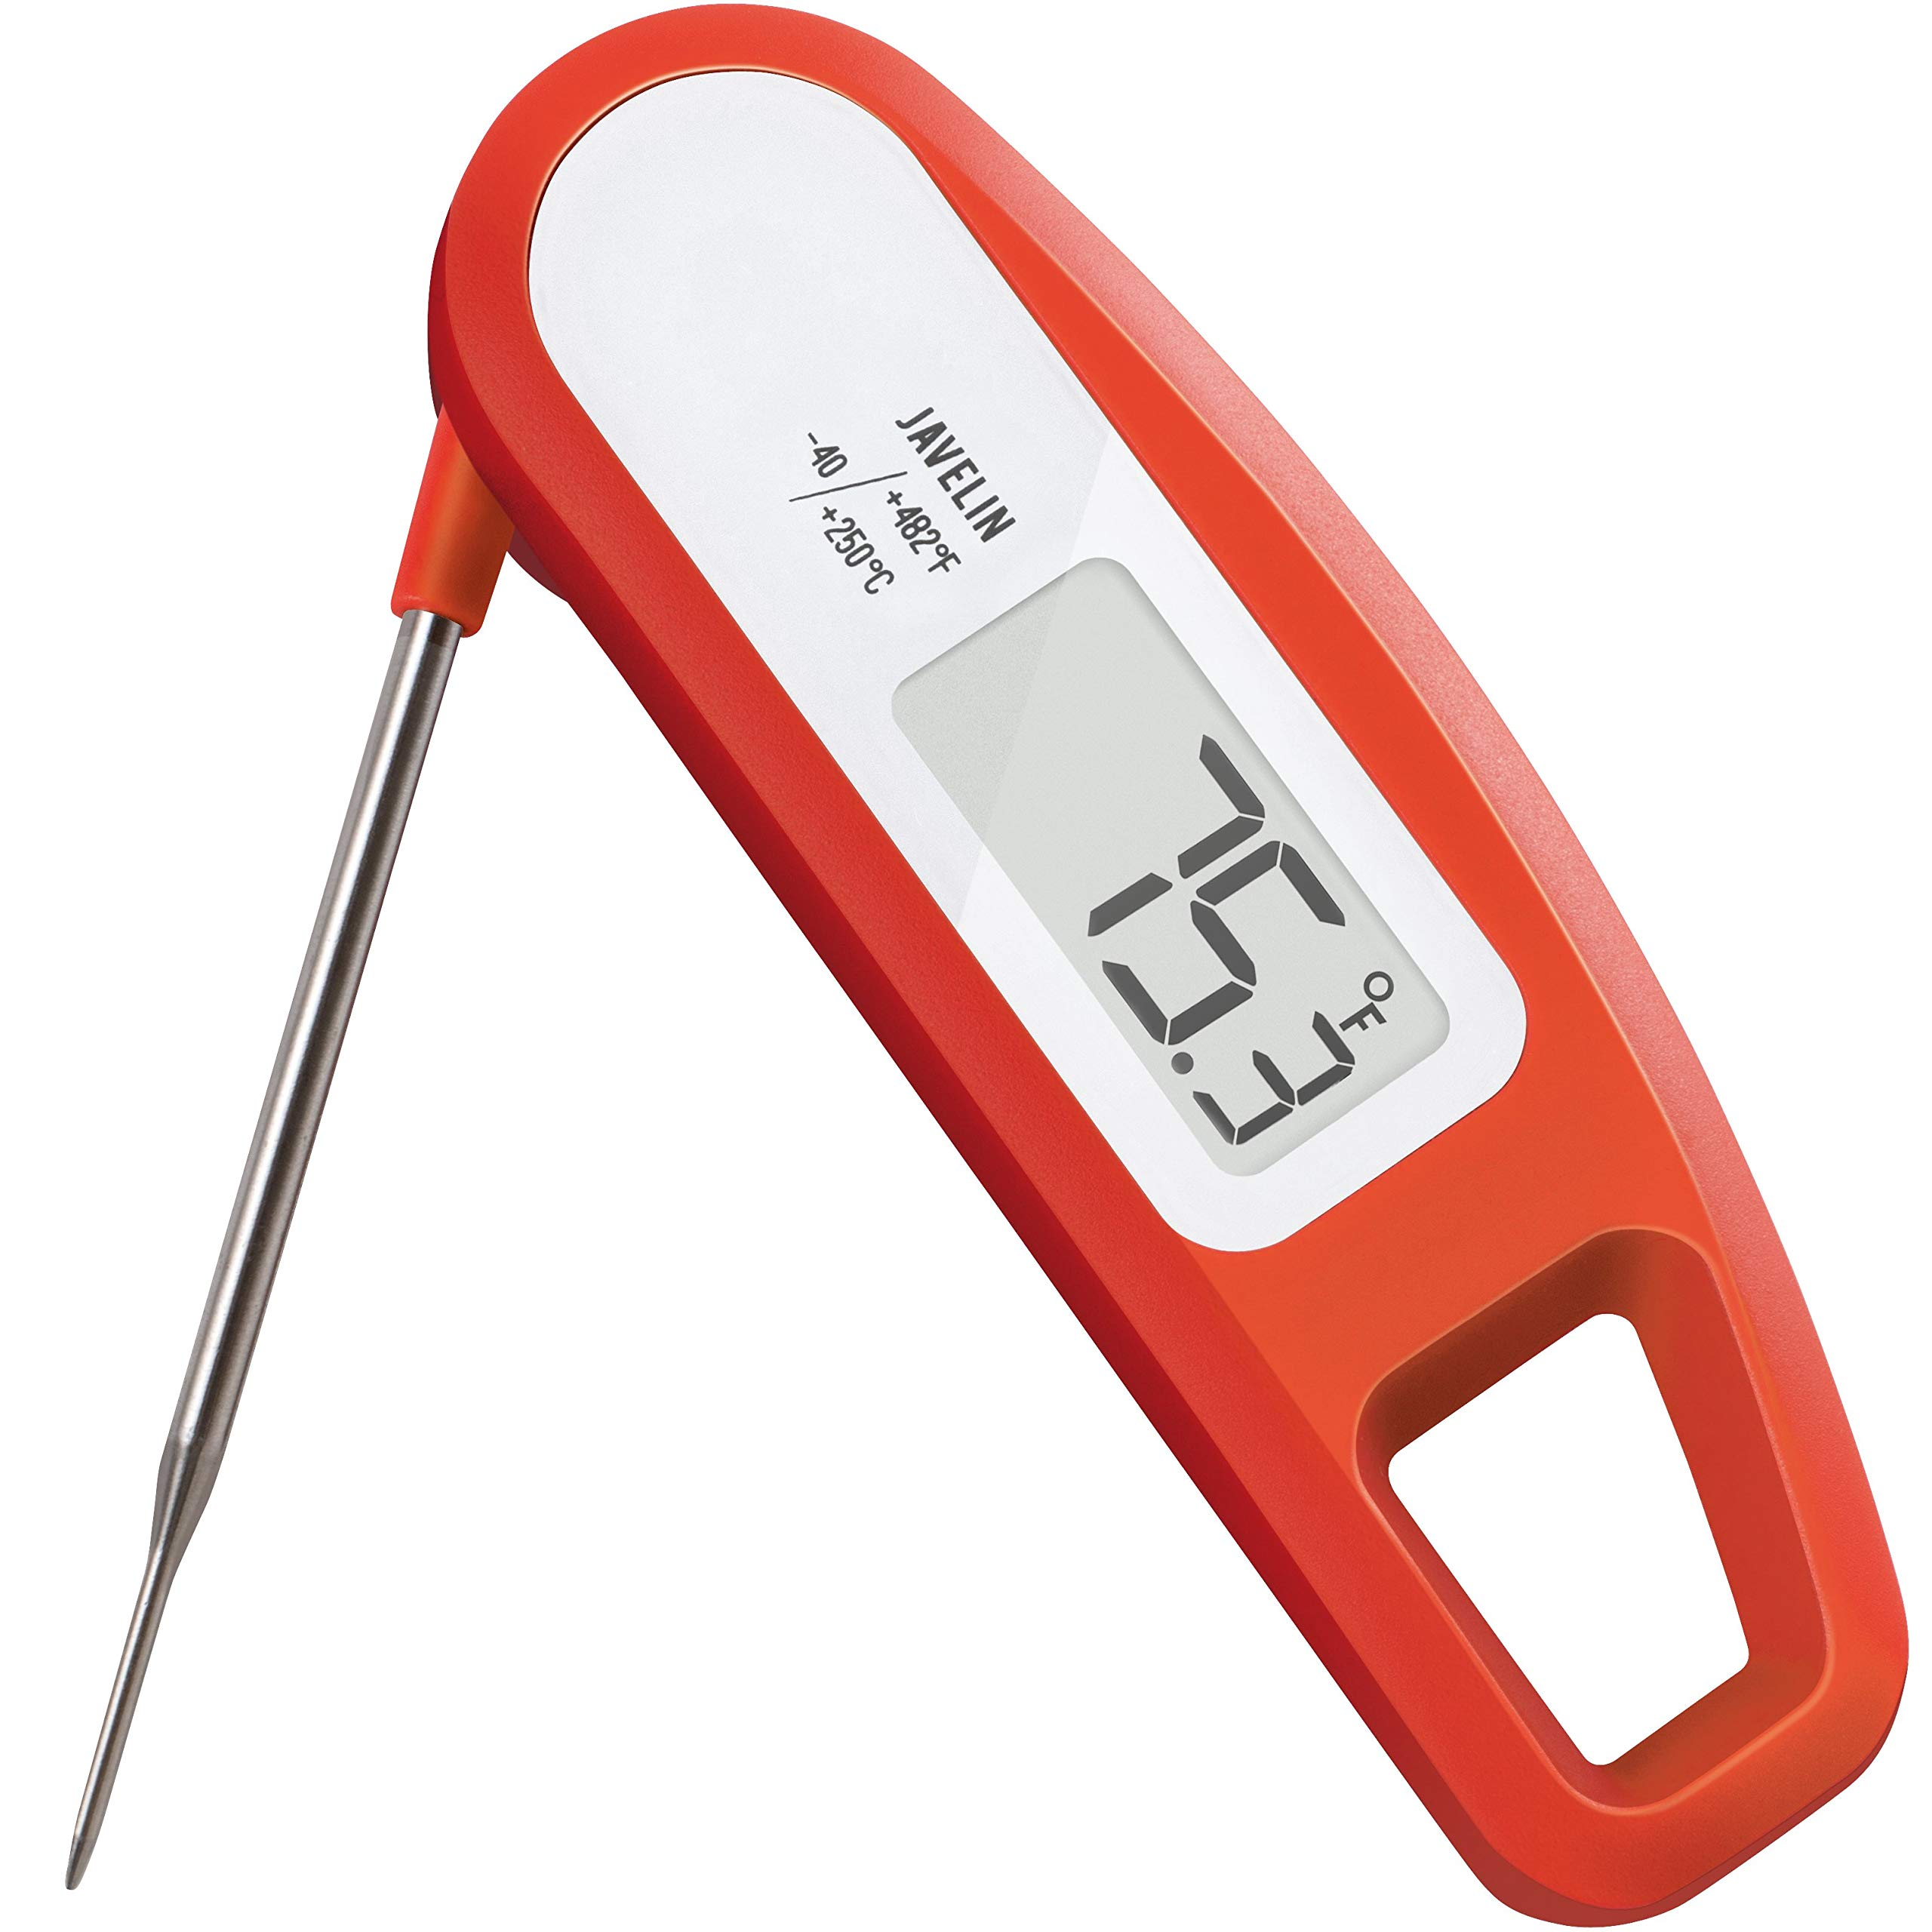 Lavatools PT12 Javelin Digital Ultra Fast Instant Read Meat Thermometer for Kitchen, Outdoor Grilling, BBQ, Brewing, and Frying (Chipotle) by Lavatools